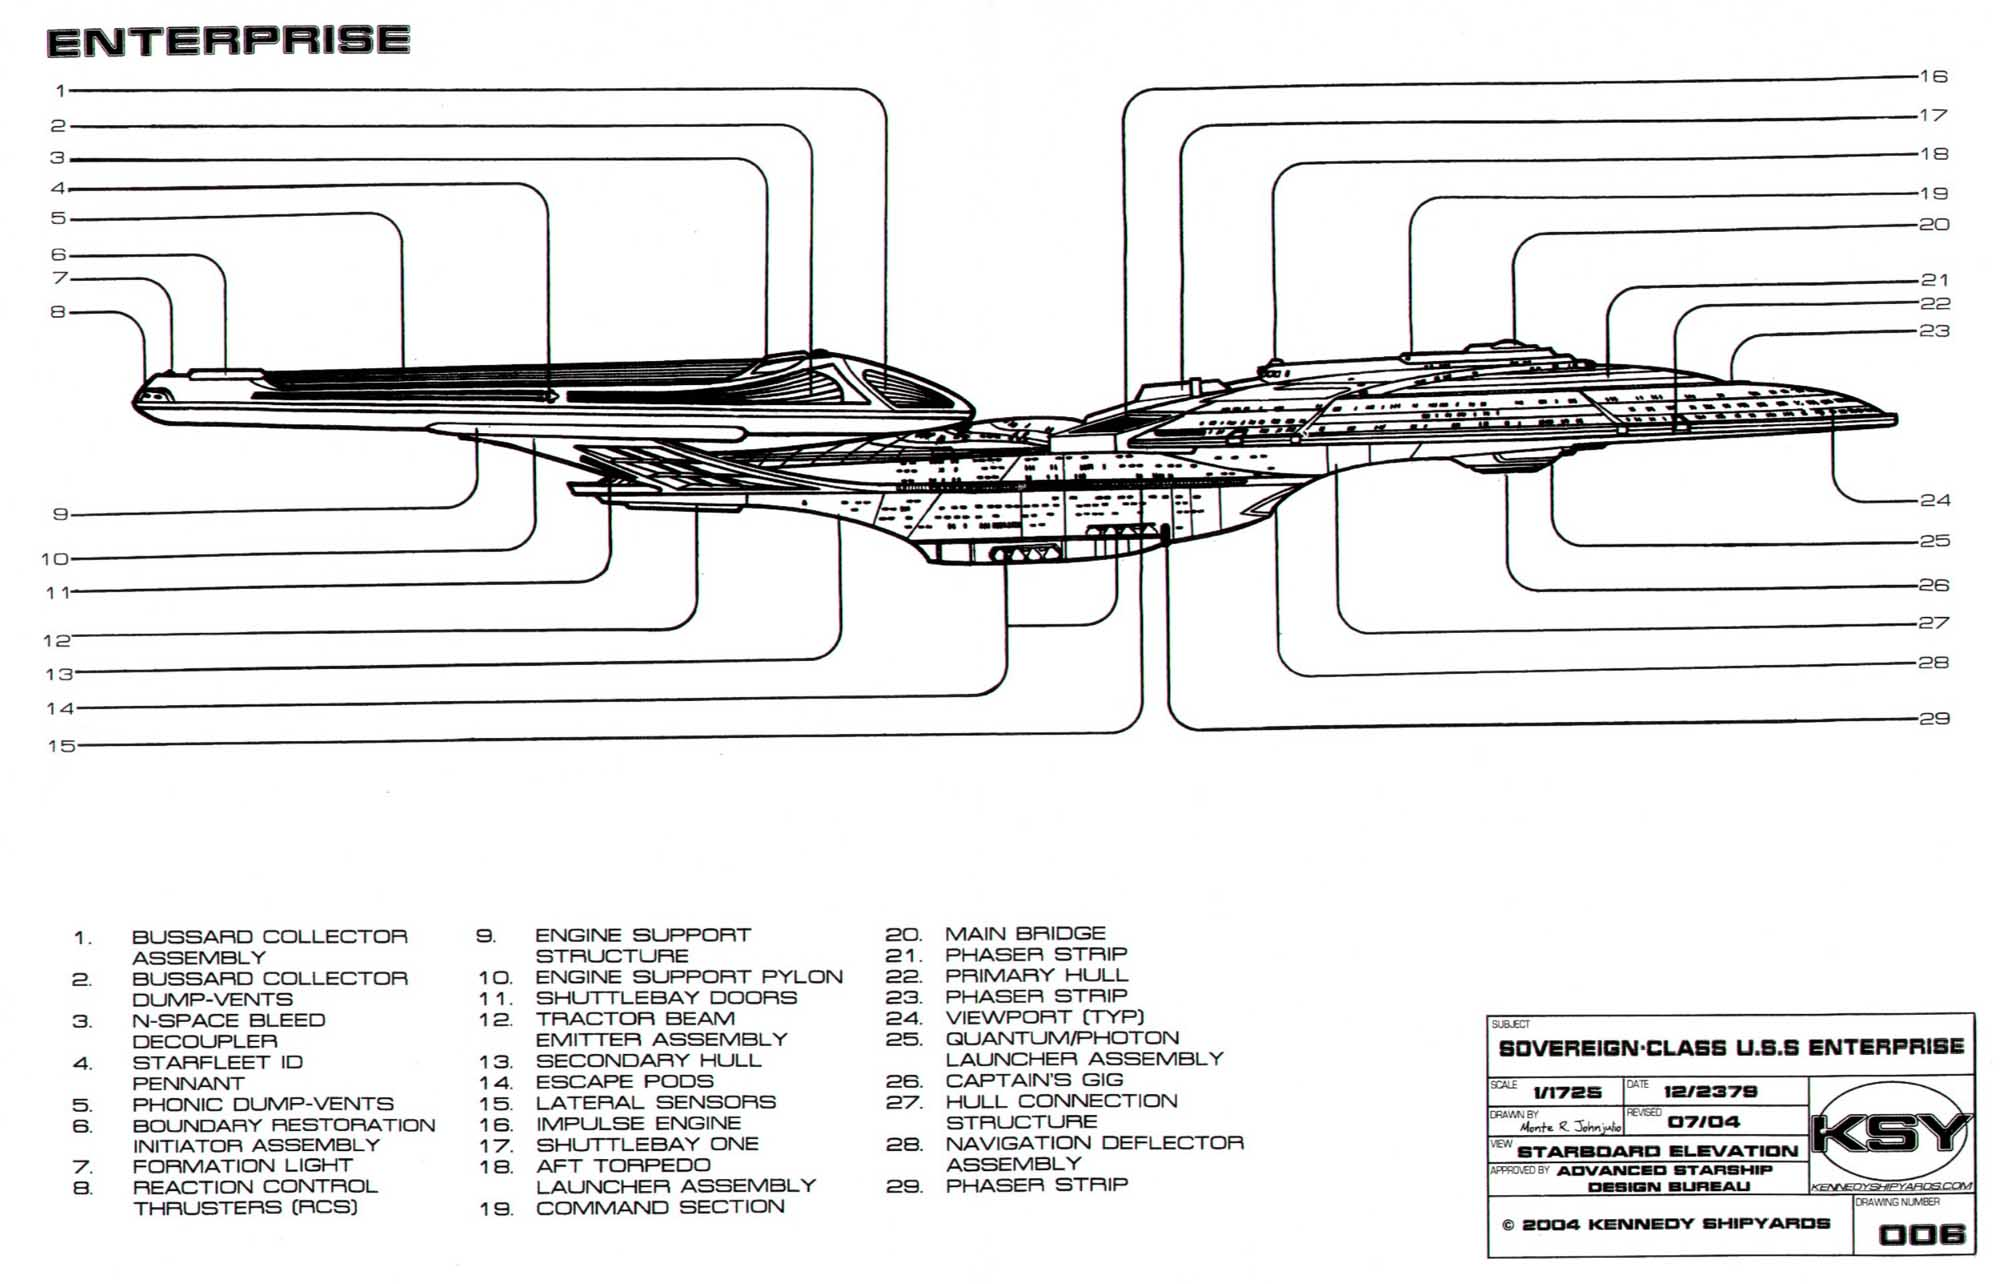 Uss Enterprise Schematics